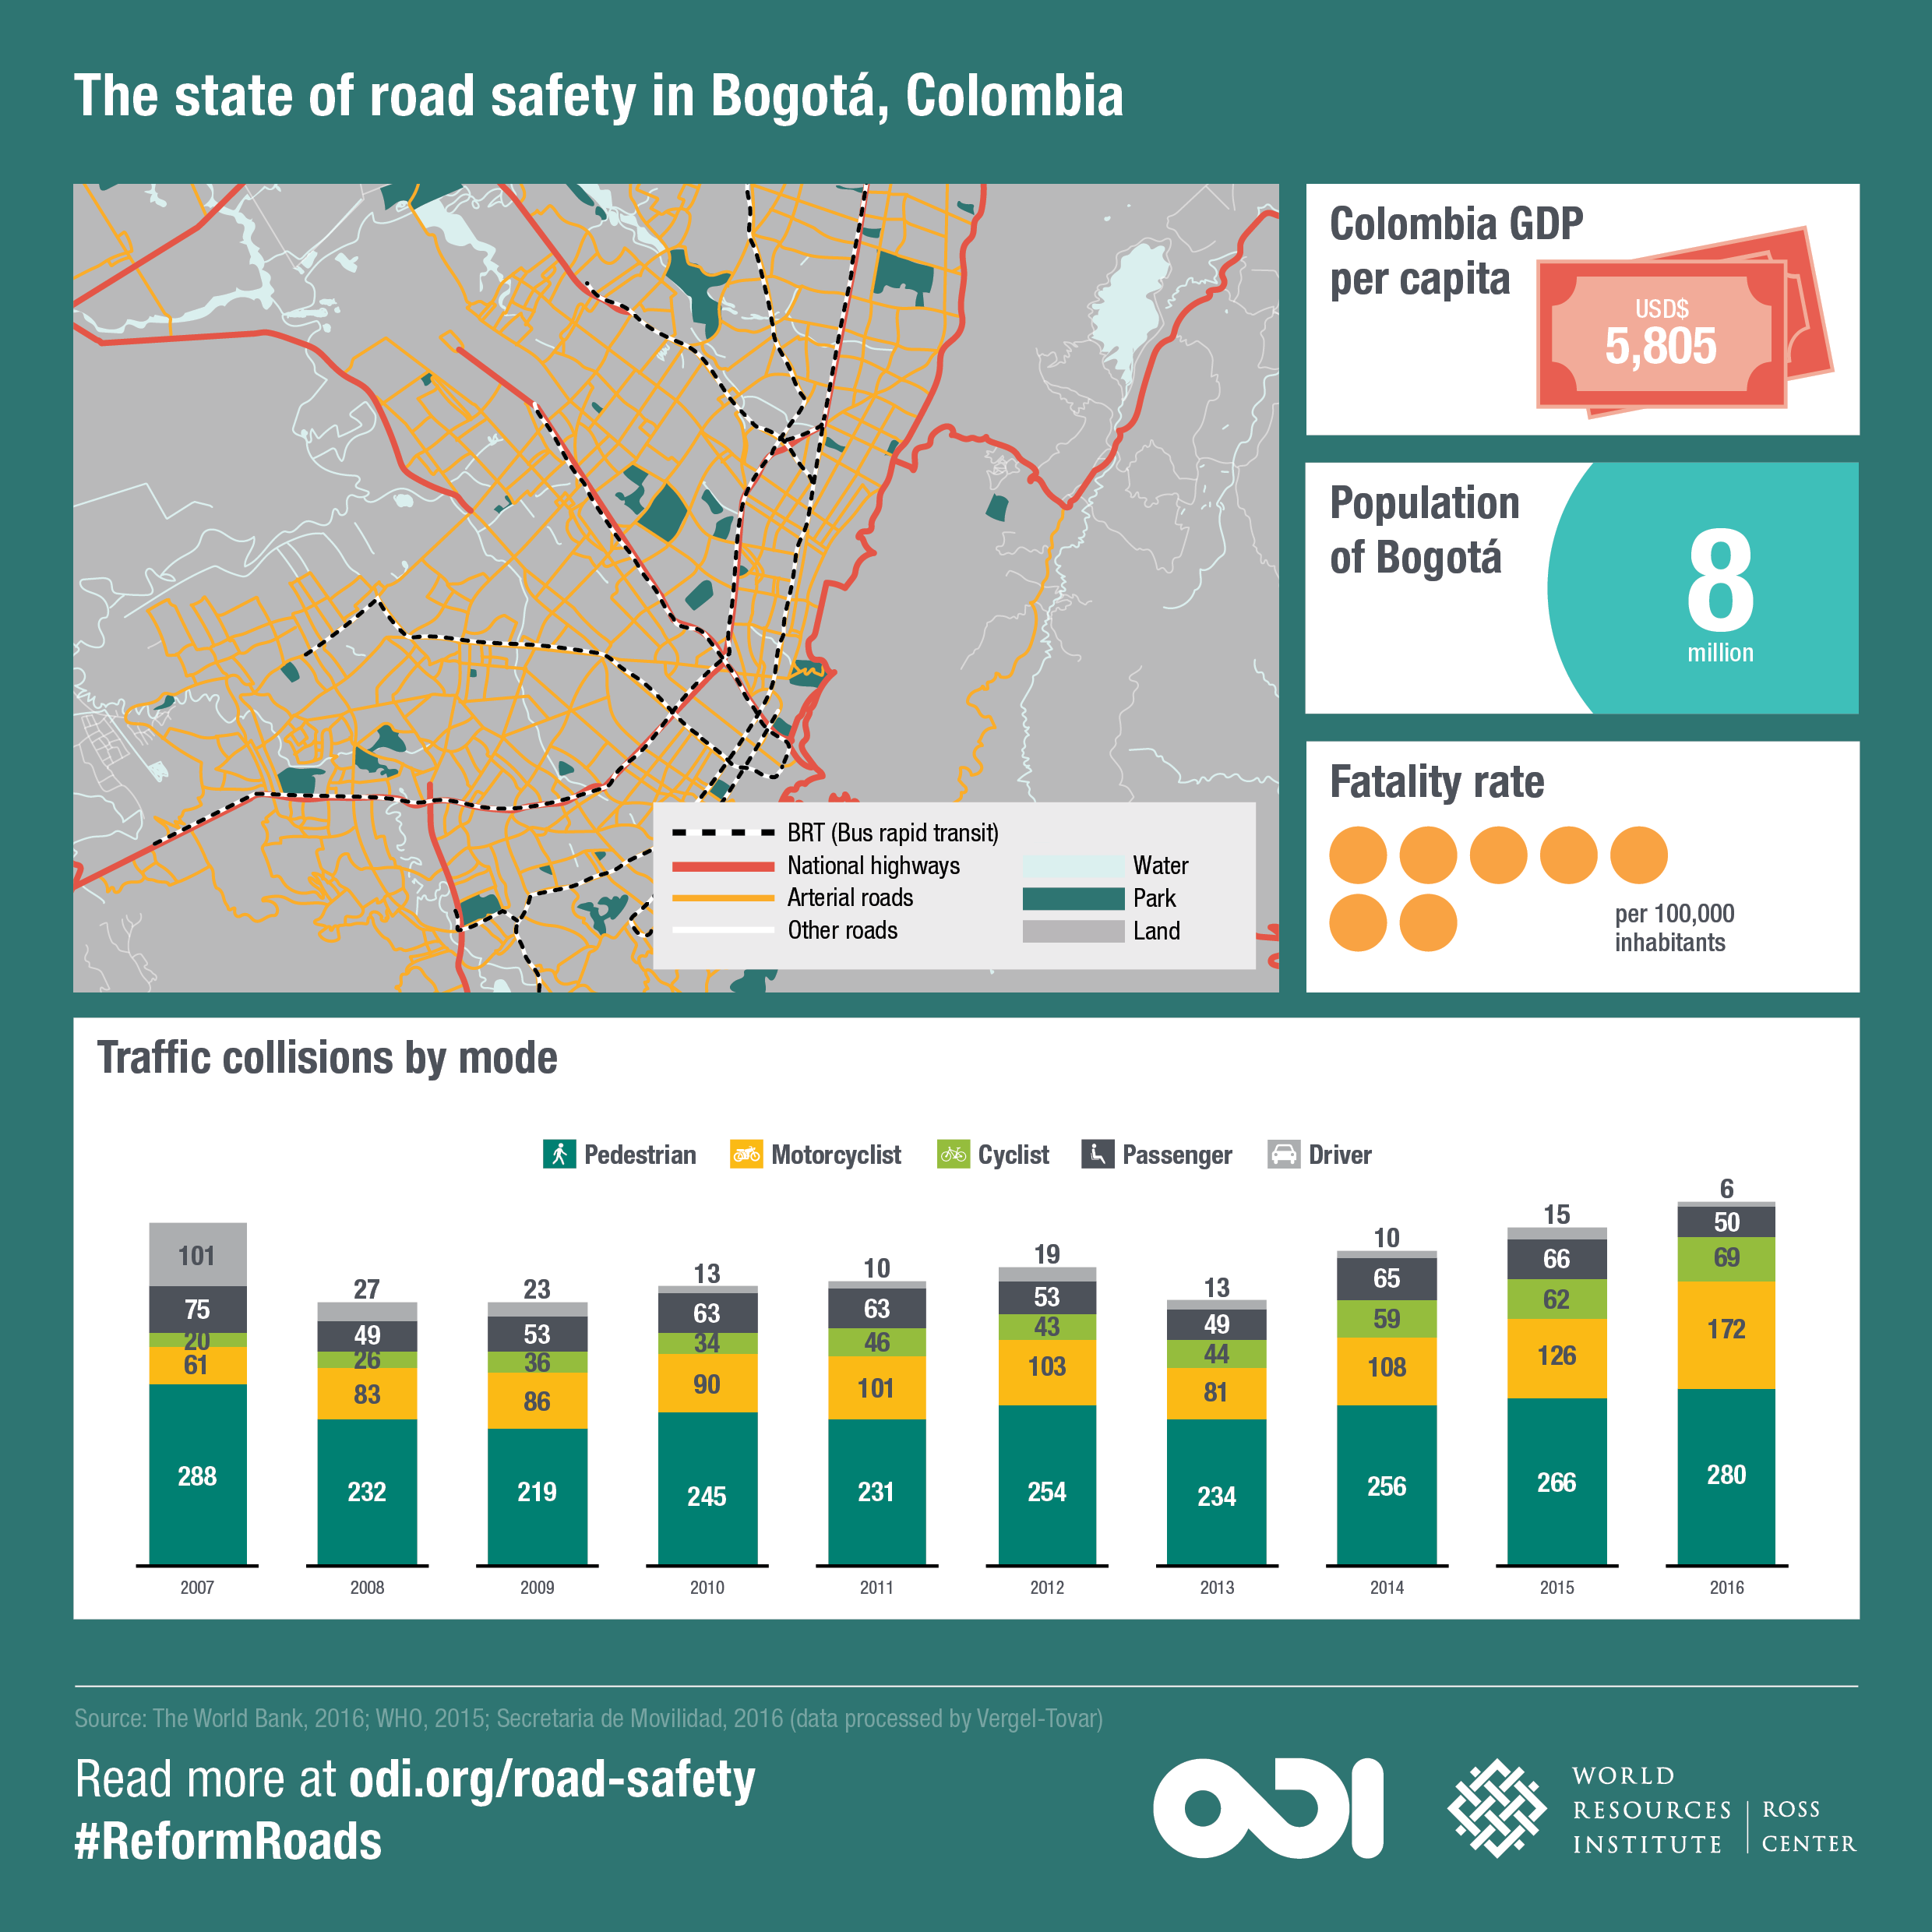 The state of road safety in Bogotá. Image: ODI and WRI